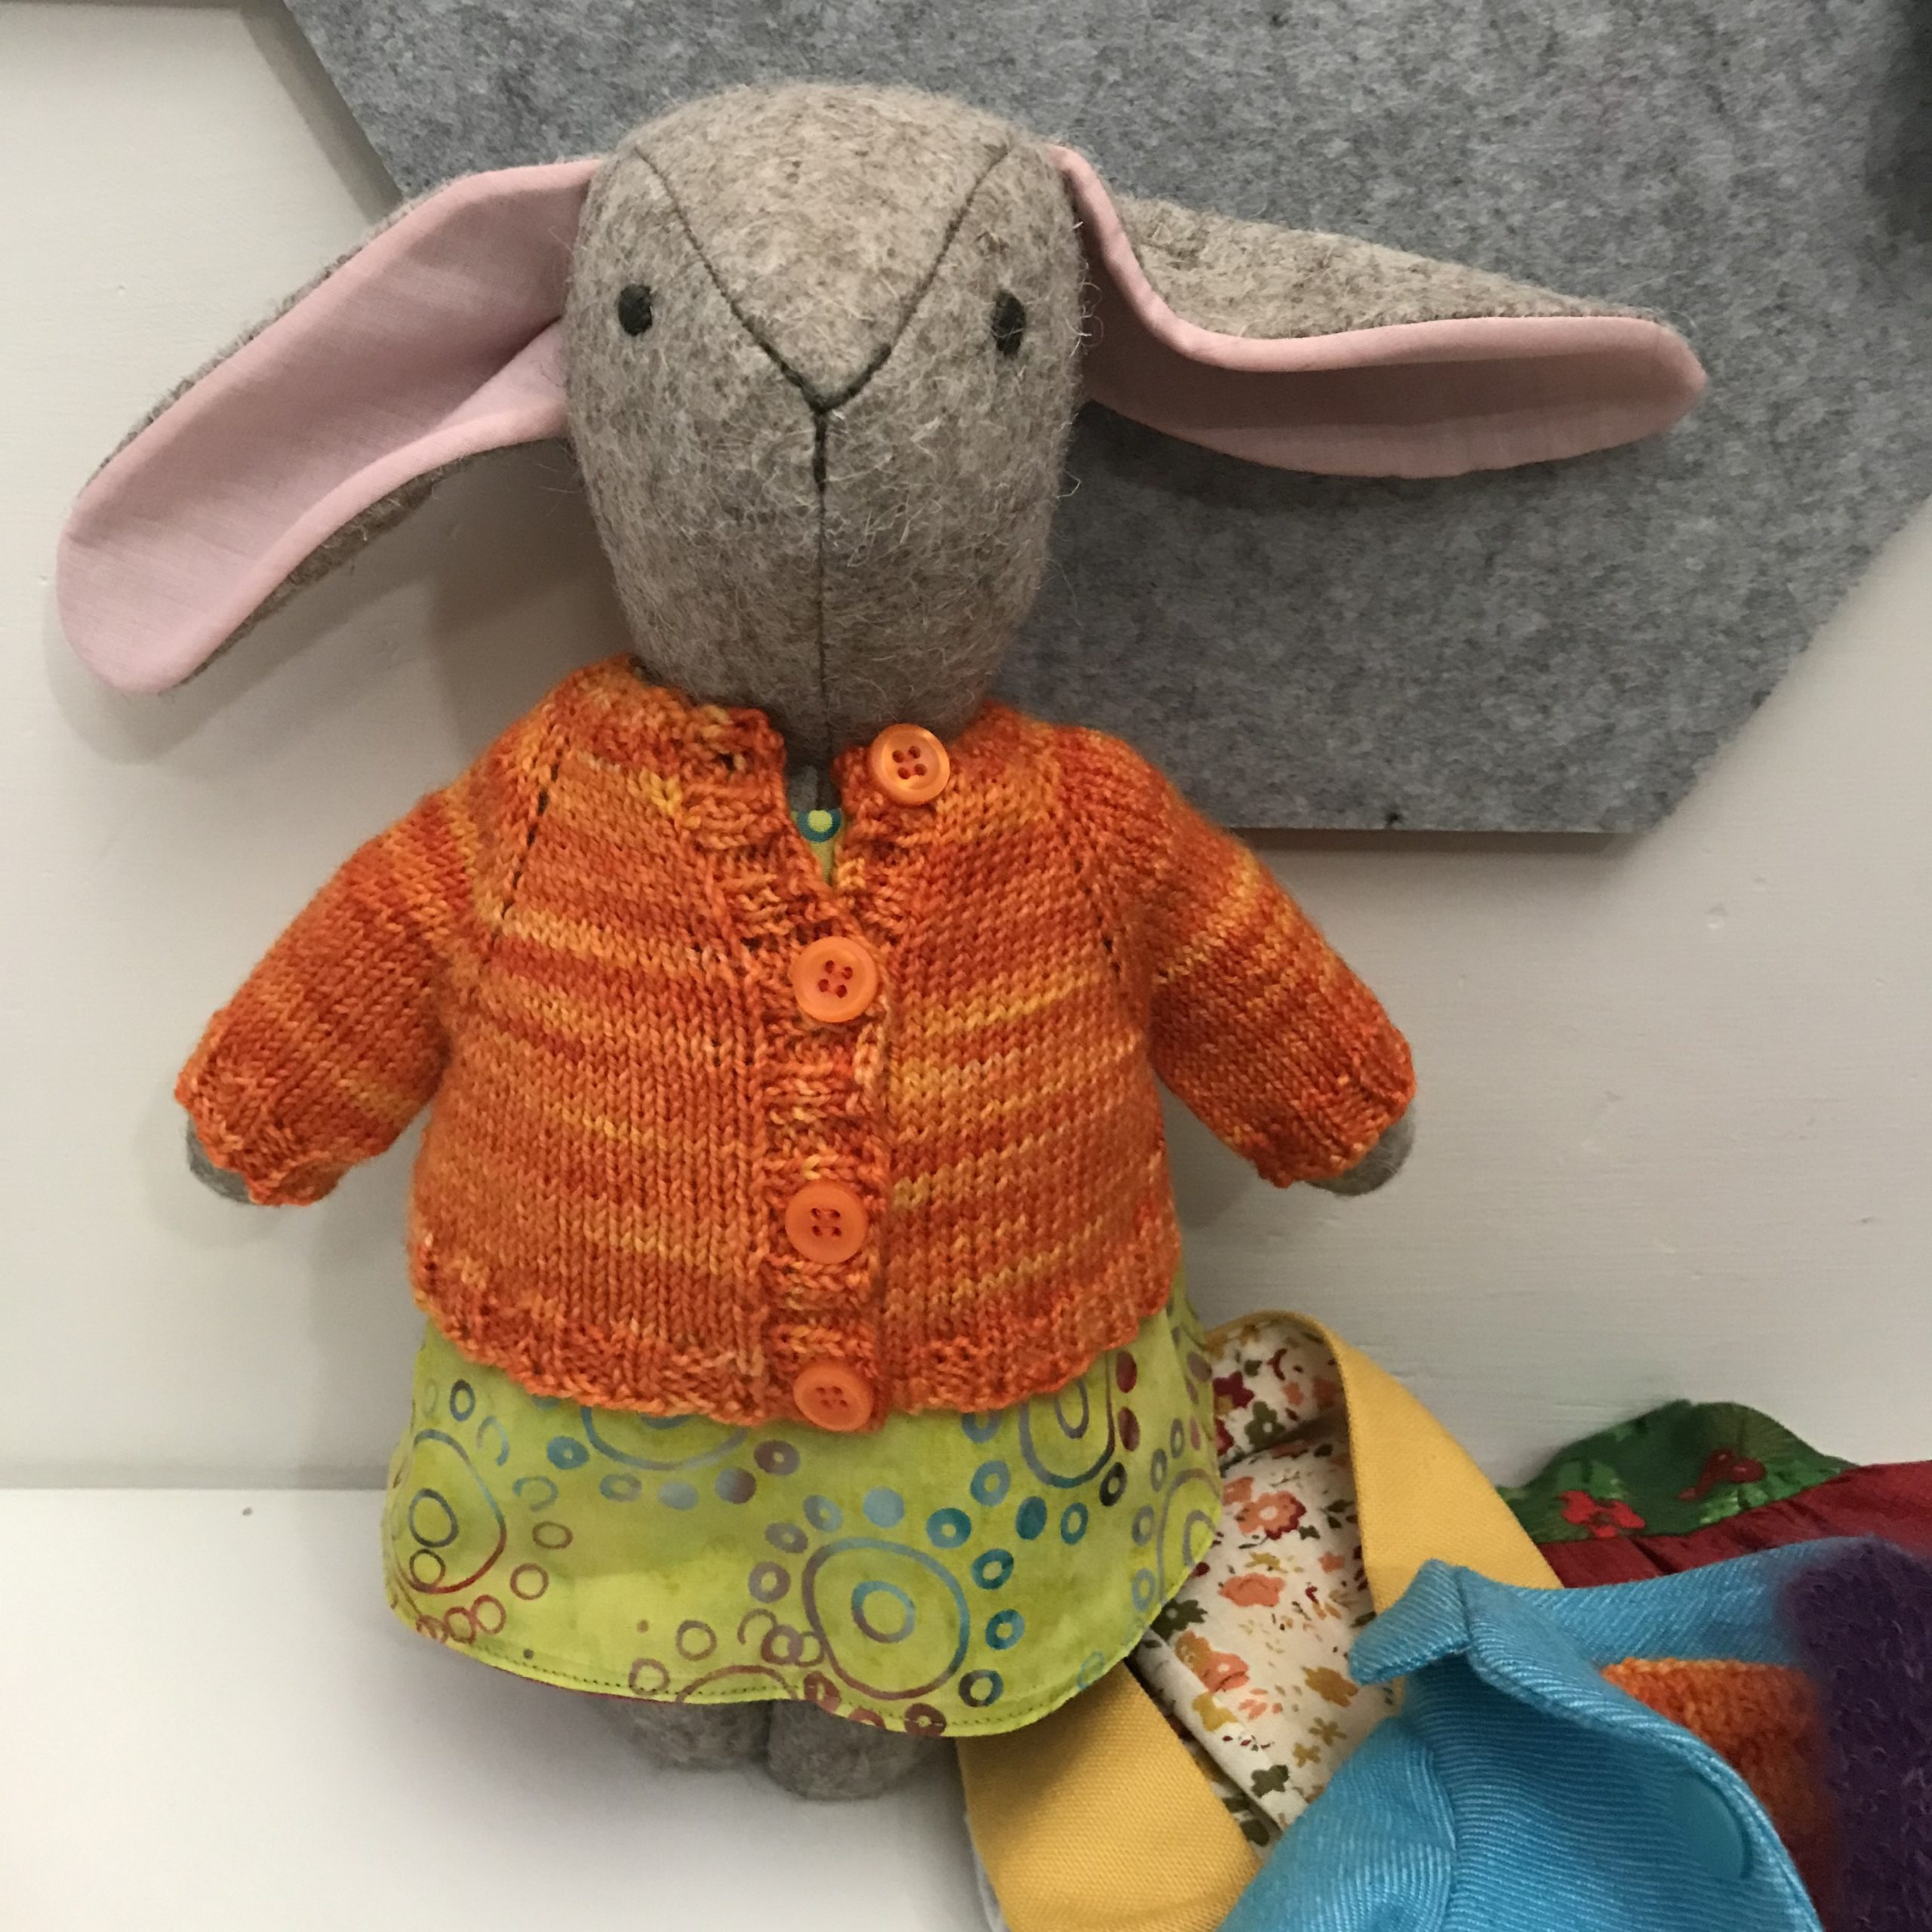 Bunny toy in a wee orange sweater.